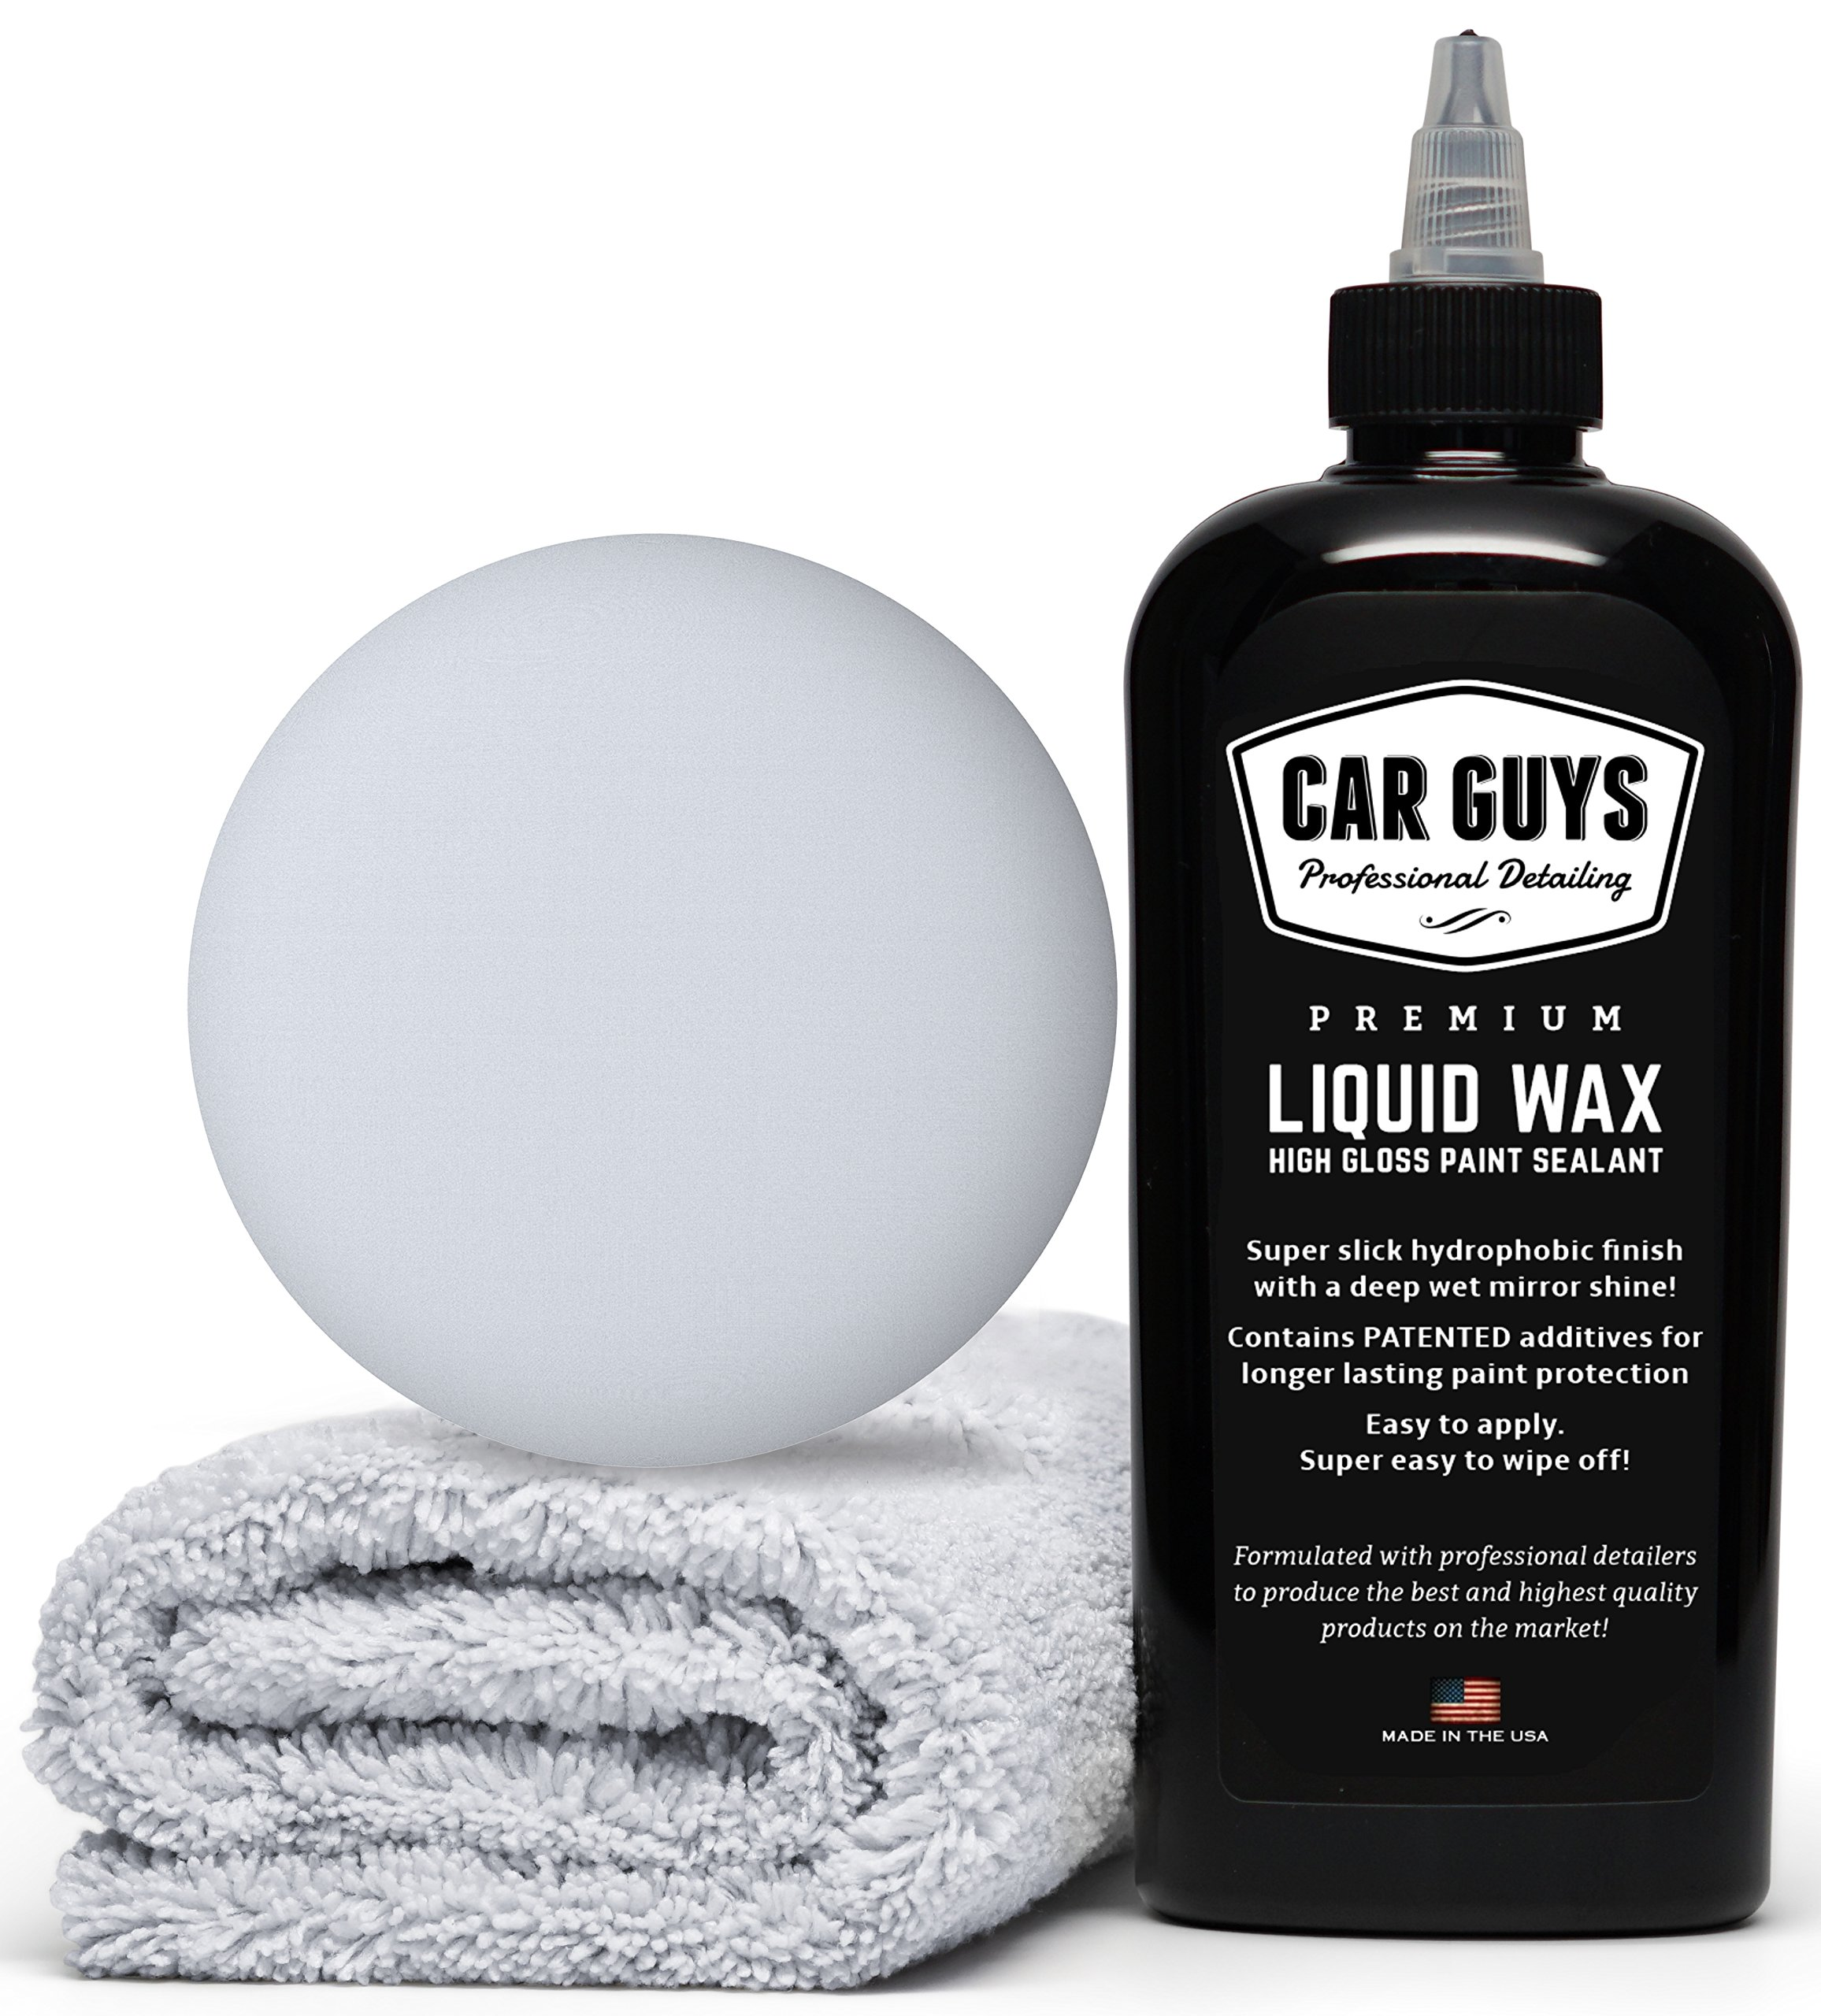 cb9b1890489 CarGuys Liquid Wax - The Ultimate Car Wax Shine with Polymer Paint Sealant  Protection! - 8 oz Kit. By CarGuys. product price 24.97